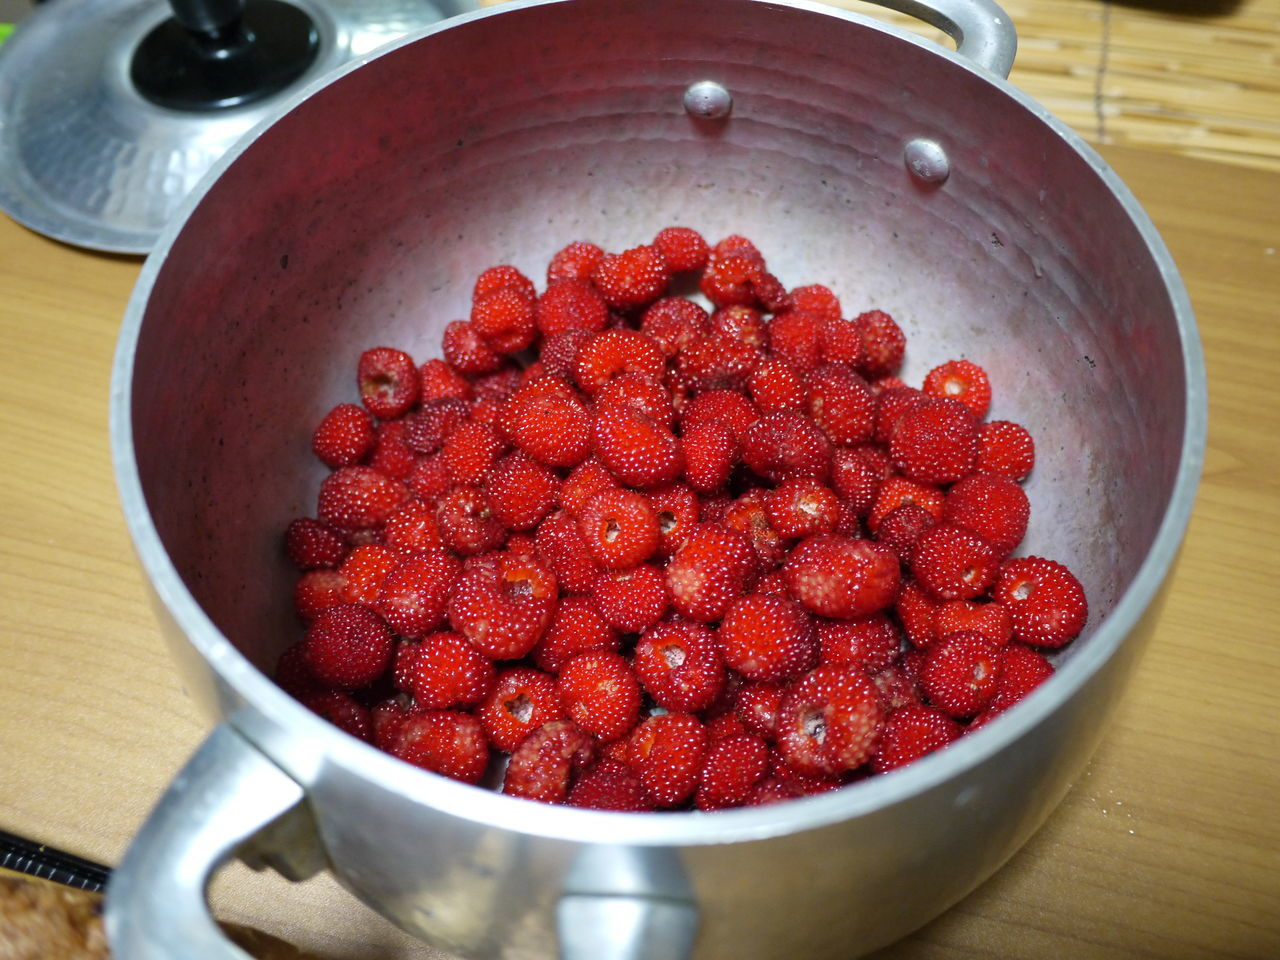 Abundance Berry Fruit Close-up Freshness Making Jam Organic Red Ripe Saucepan Still Life Wild Strawberries